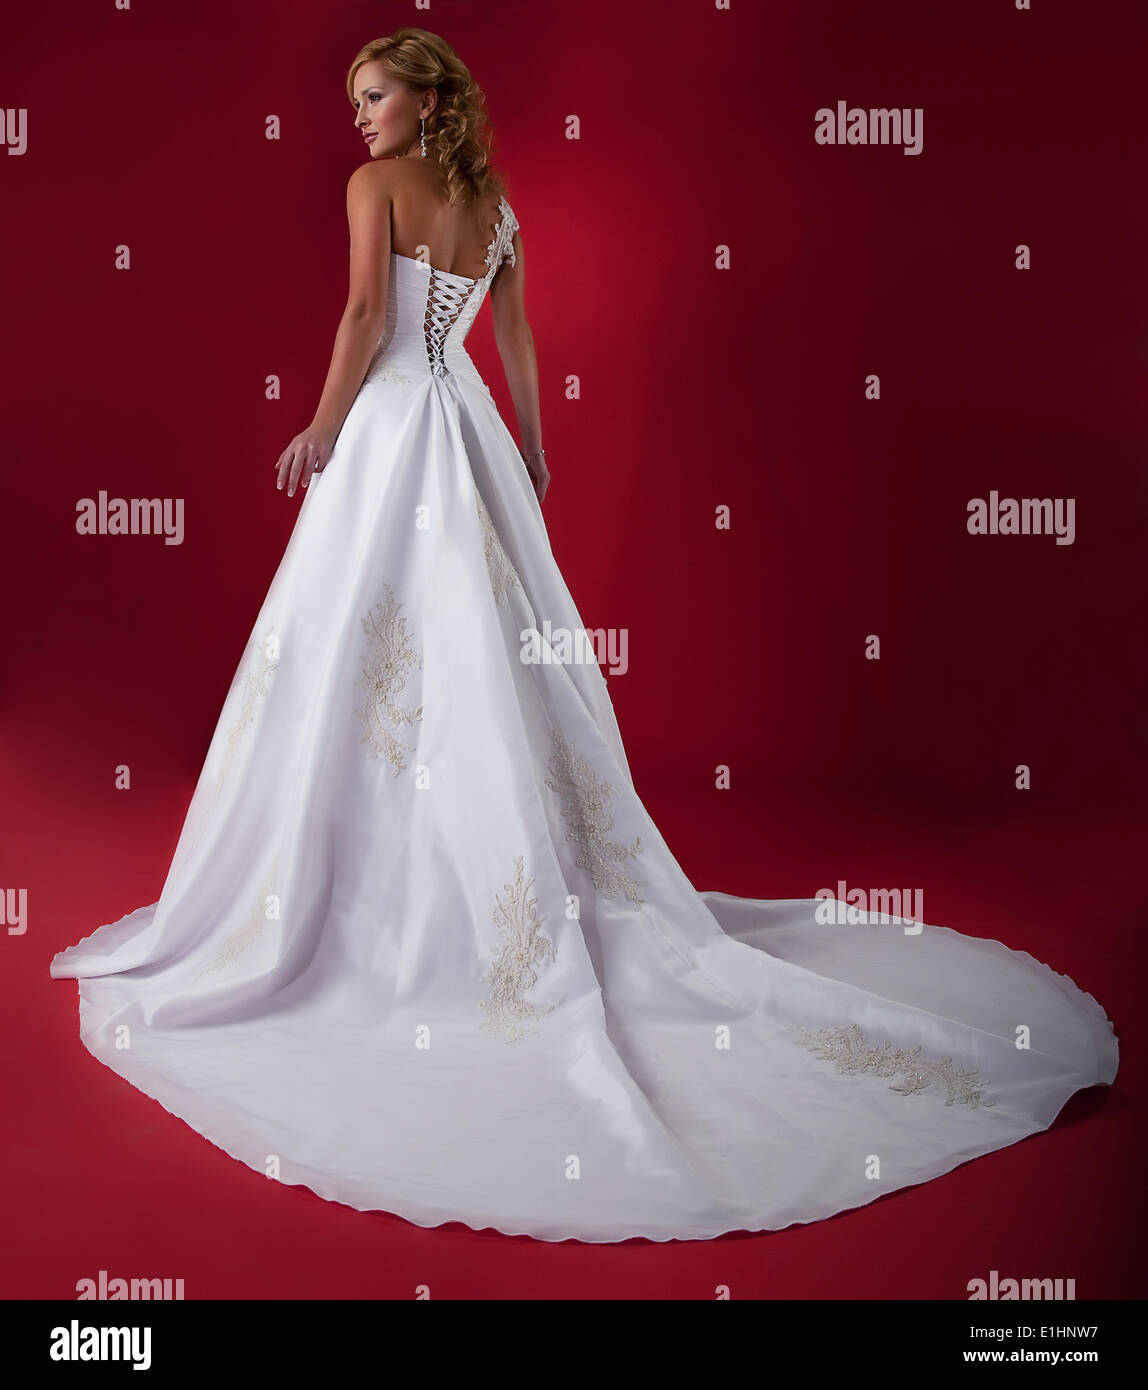 Fashionable blonde young bride in long white wedding dress over red ...